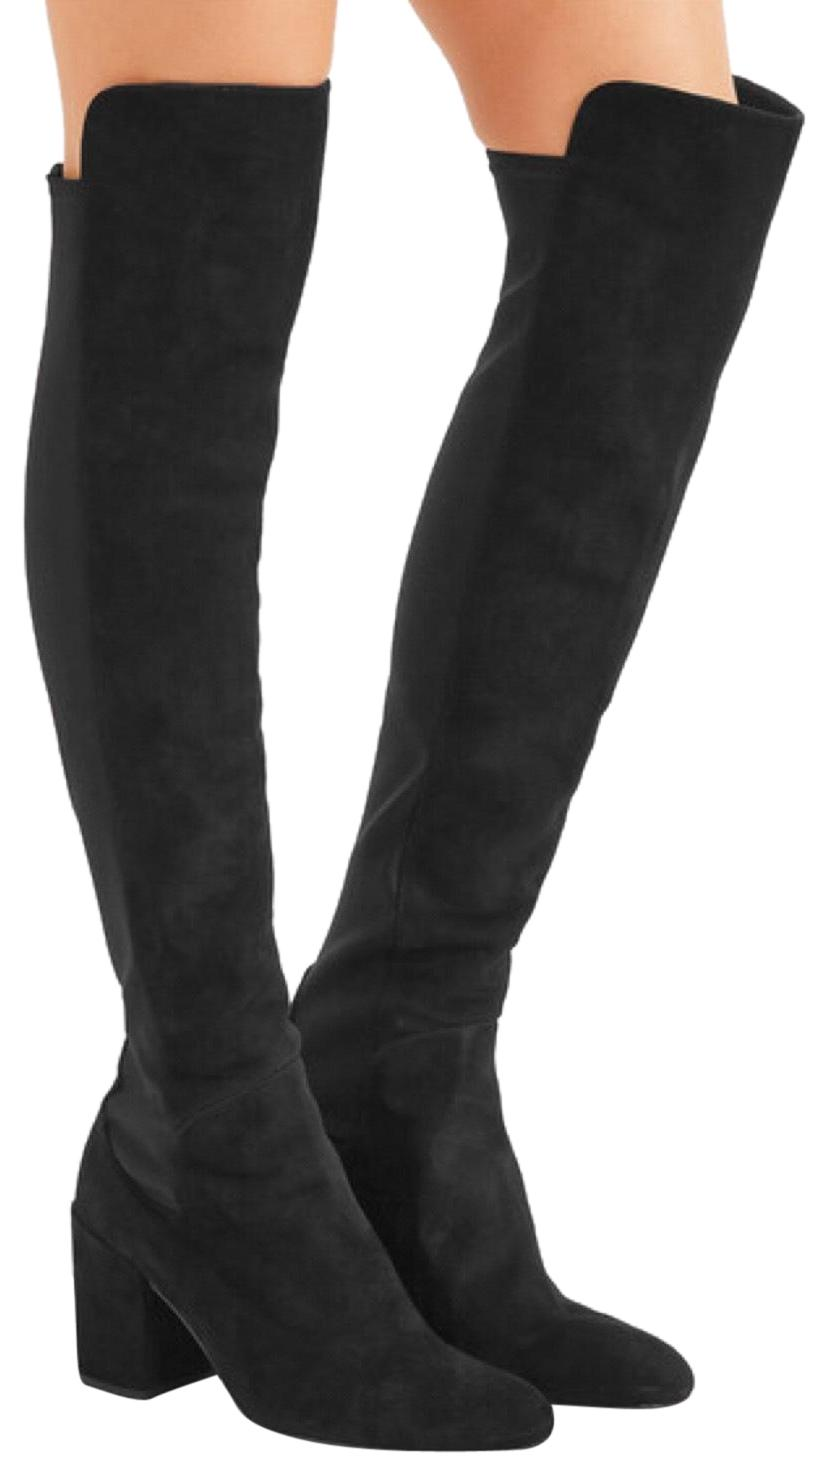 sast cheap price sale extremely Stuart Weitzman Halftime boots quality free shipping for sale sale visa payment wiki online zrgcUu1